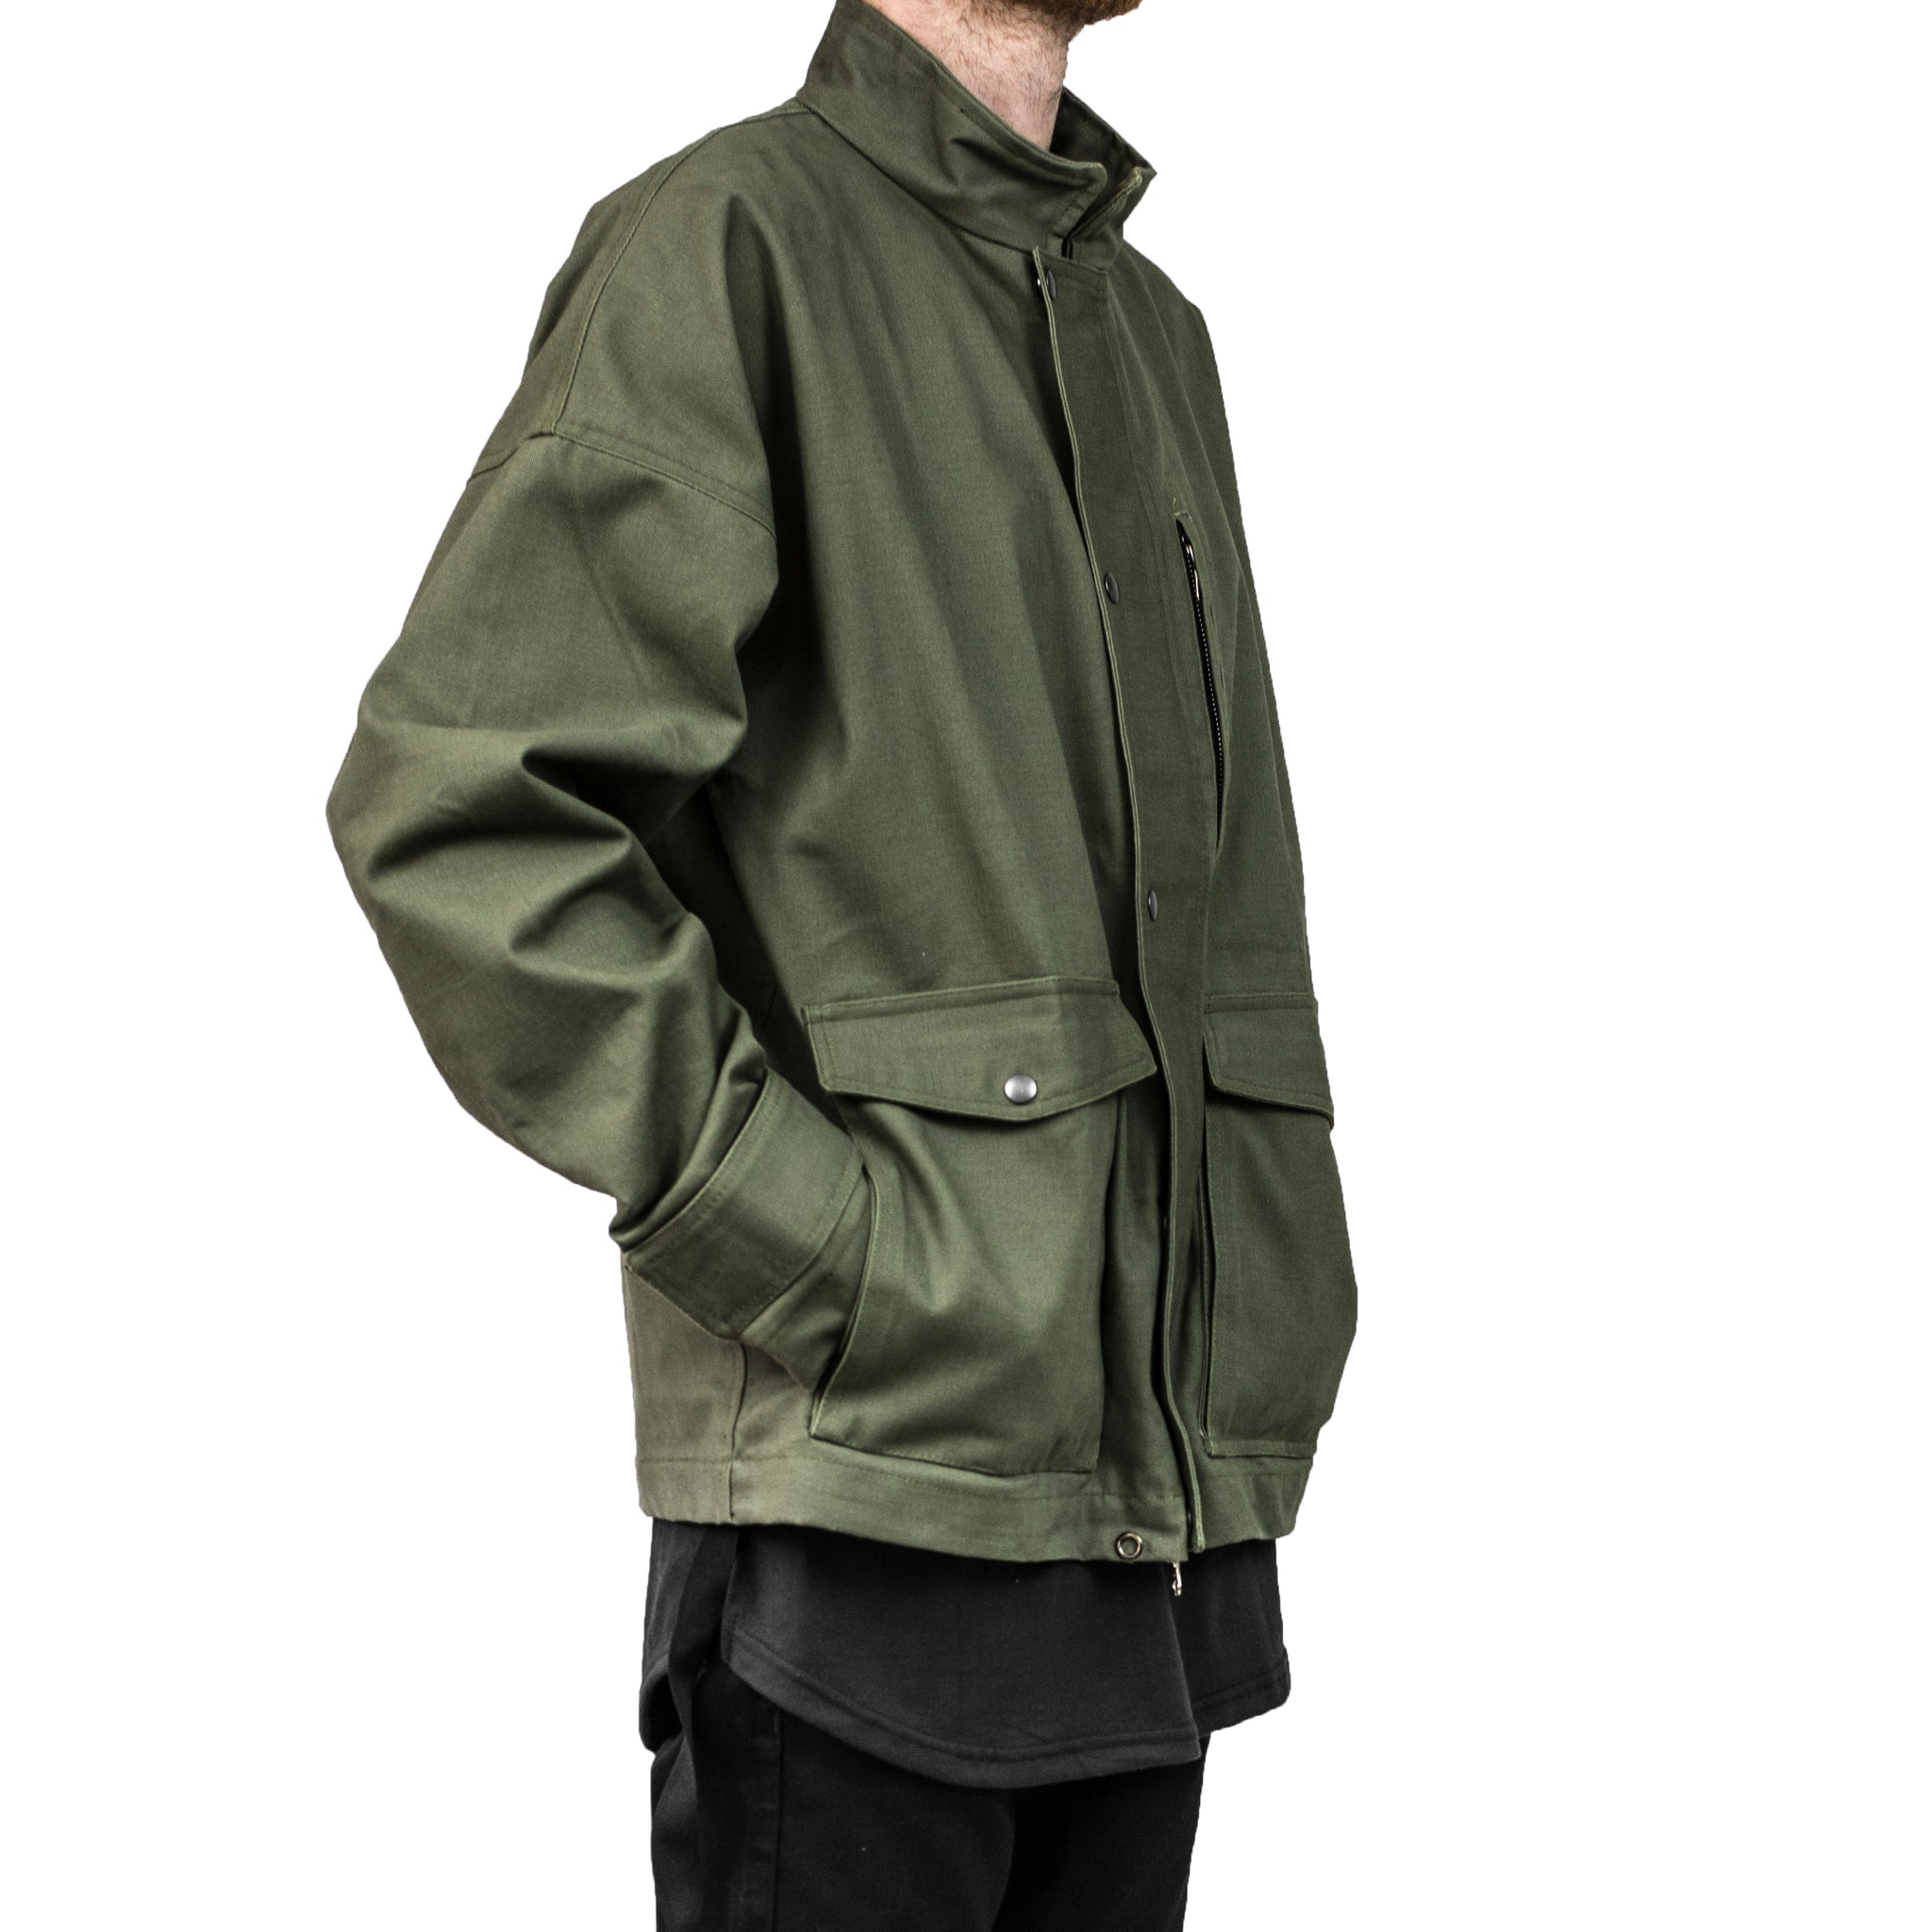 I-65 Pilot Jacket : Olive Duck Canvas